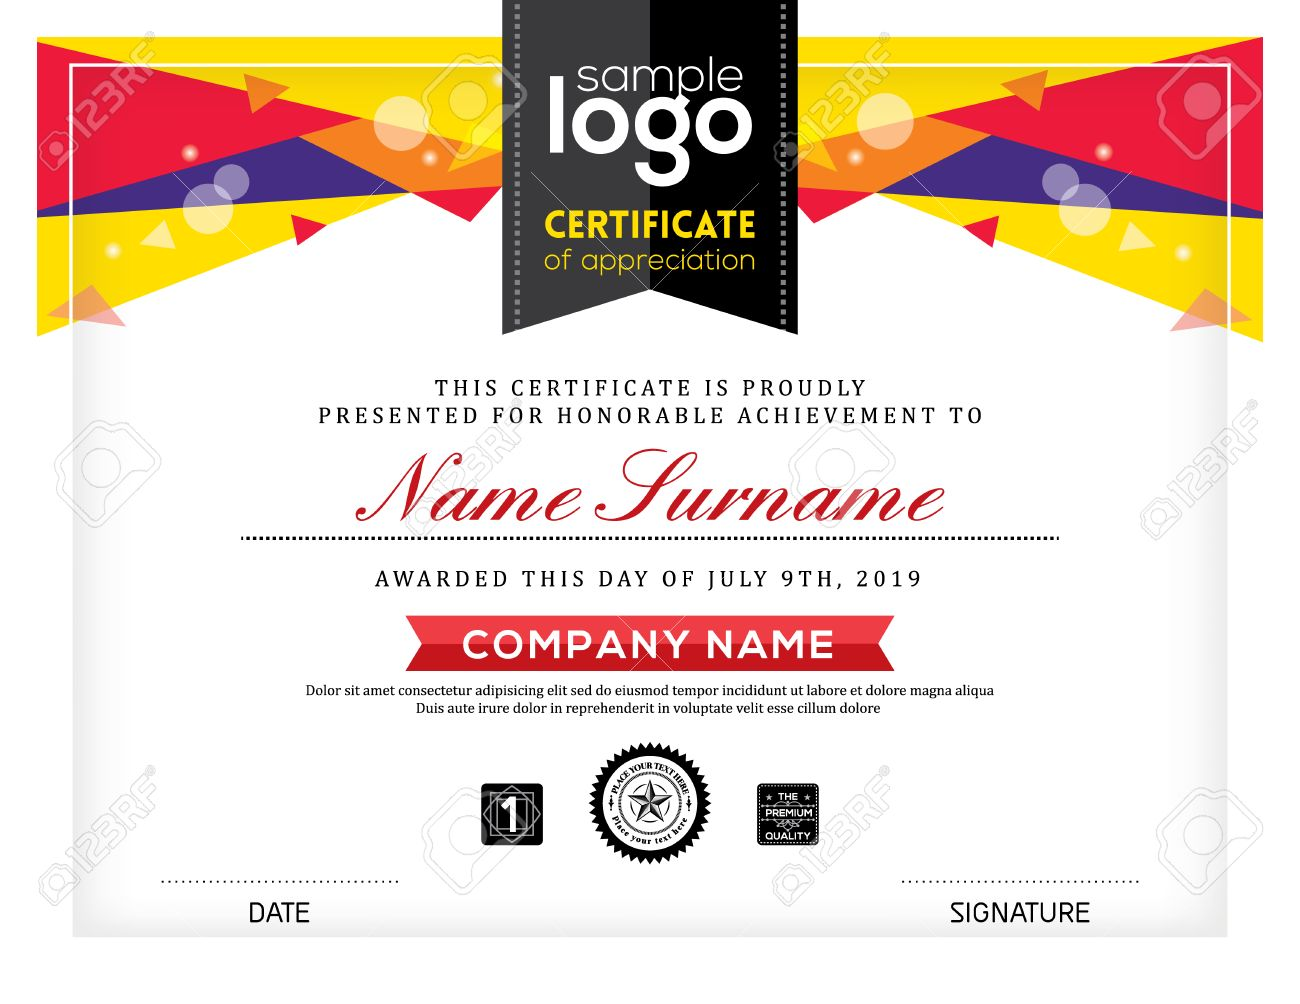 Postmodernism certificate abstract graphic background frame design template - 53297594